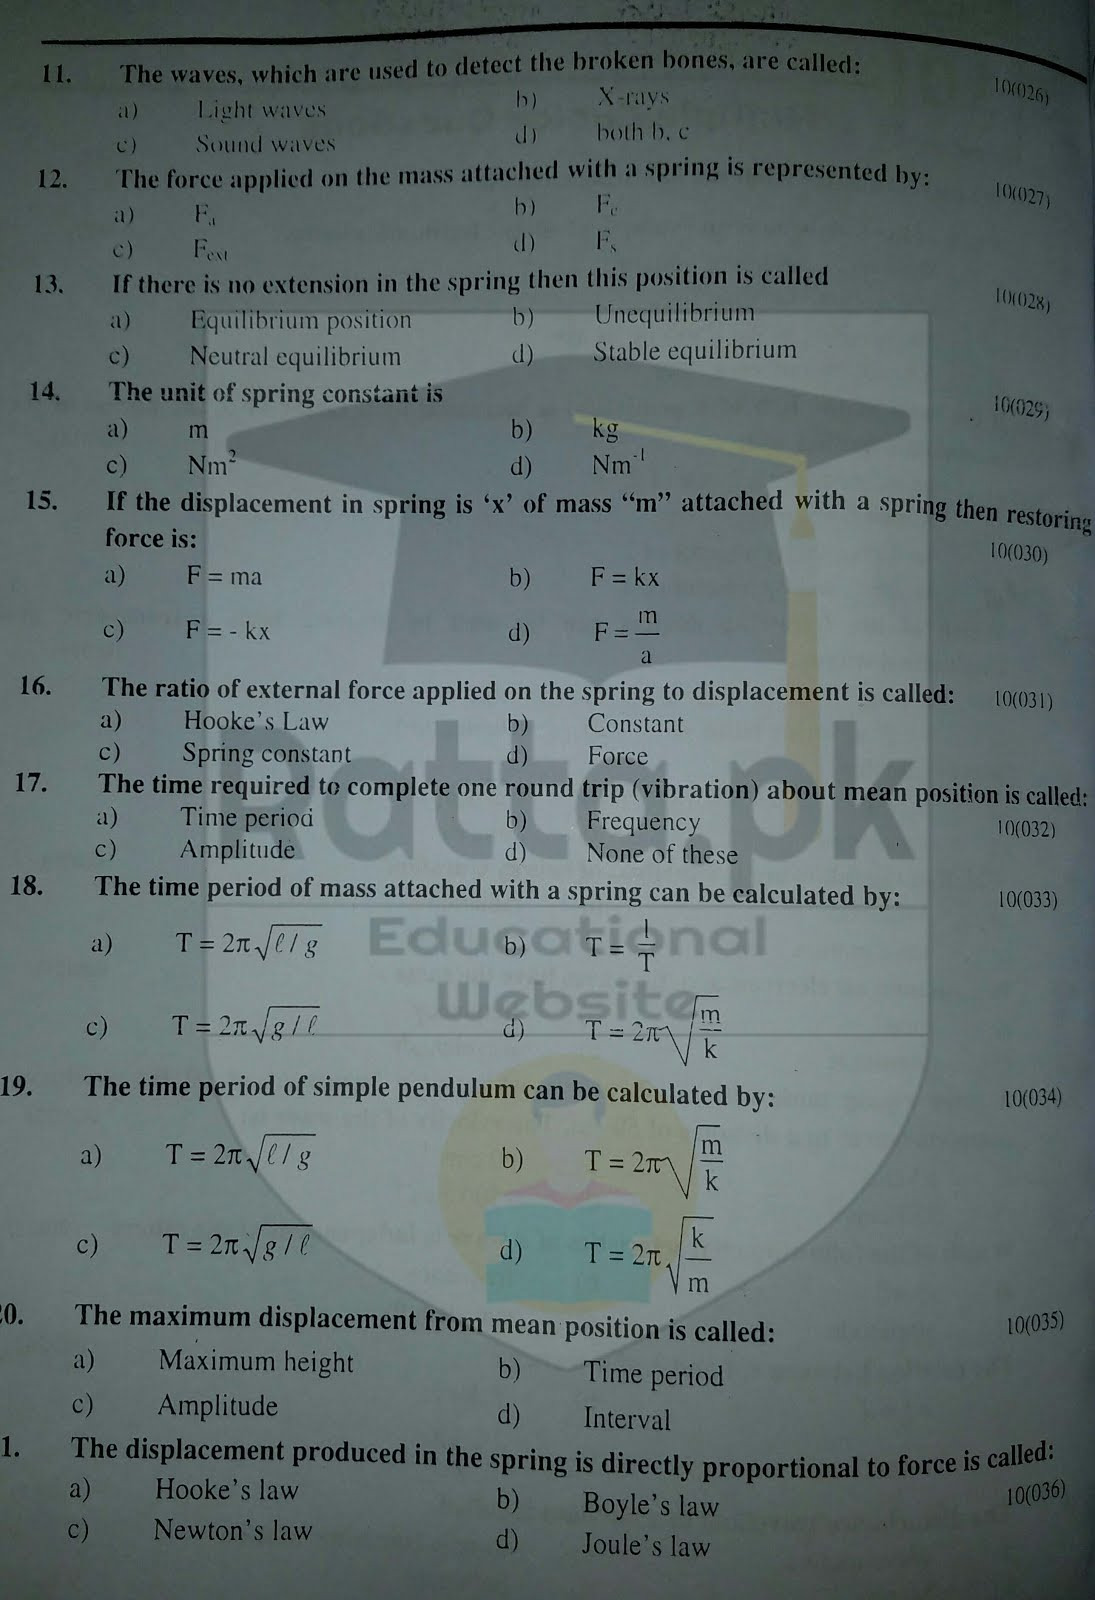 Matric 10th class Physics Chapter 1 solved MCQs 1